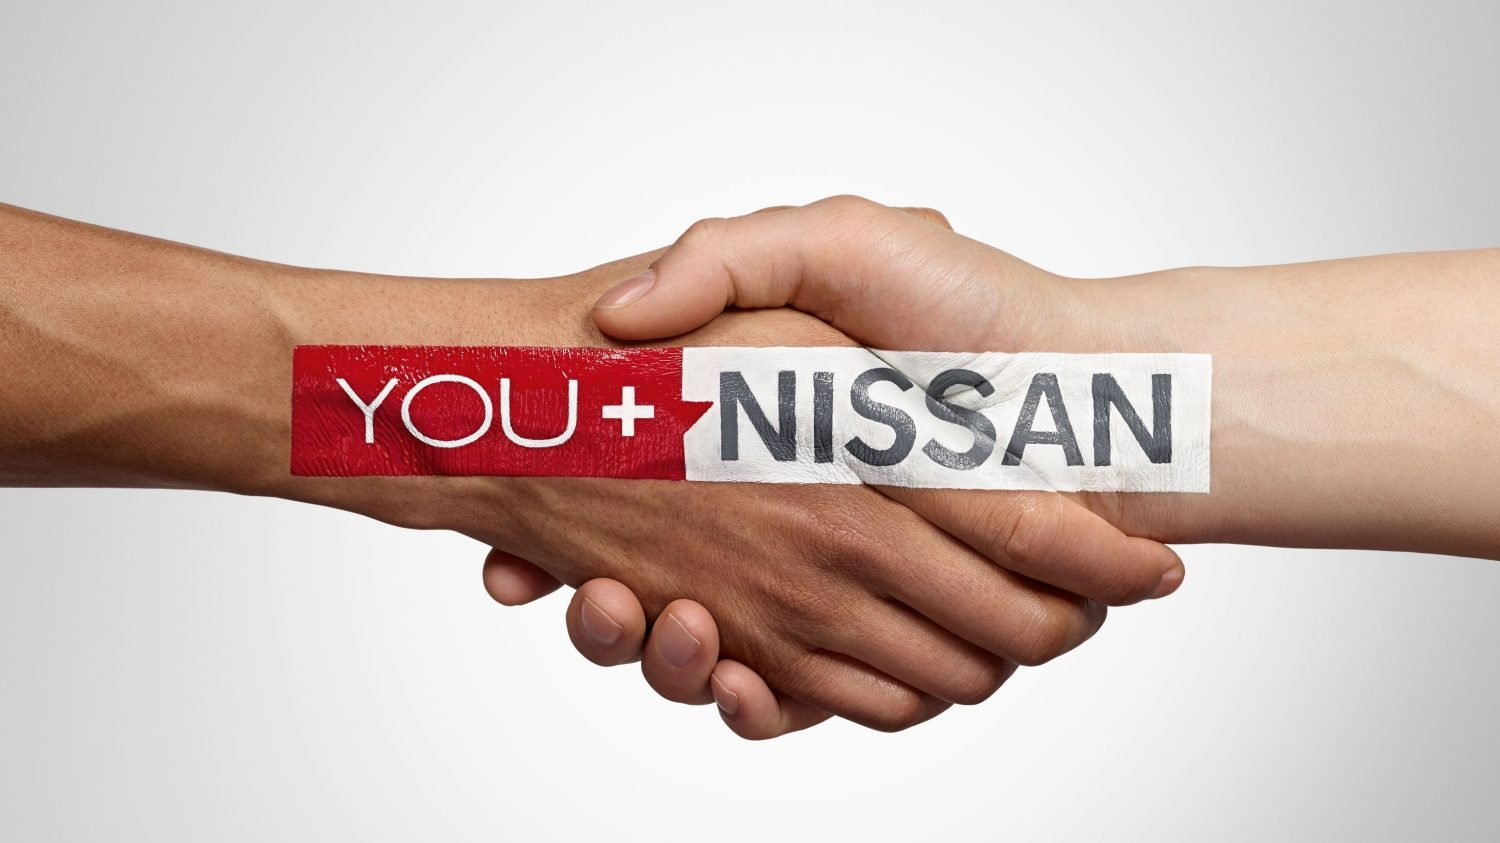 Nissan - Proprietari - You+Nissan